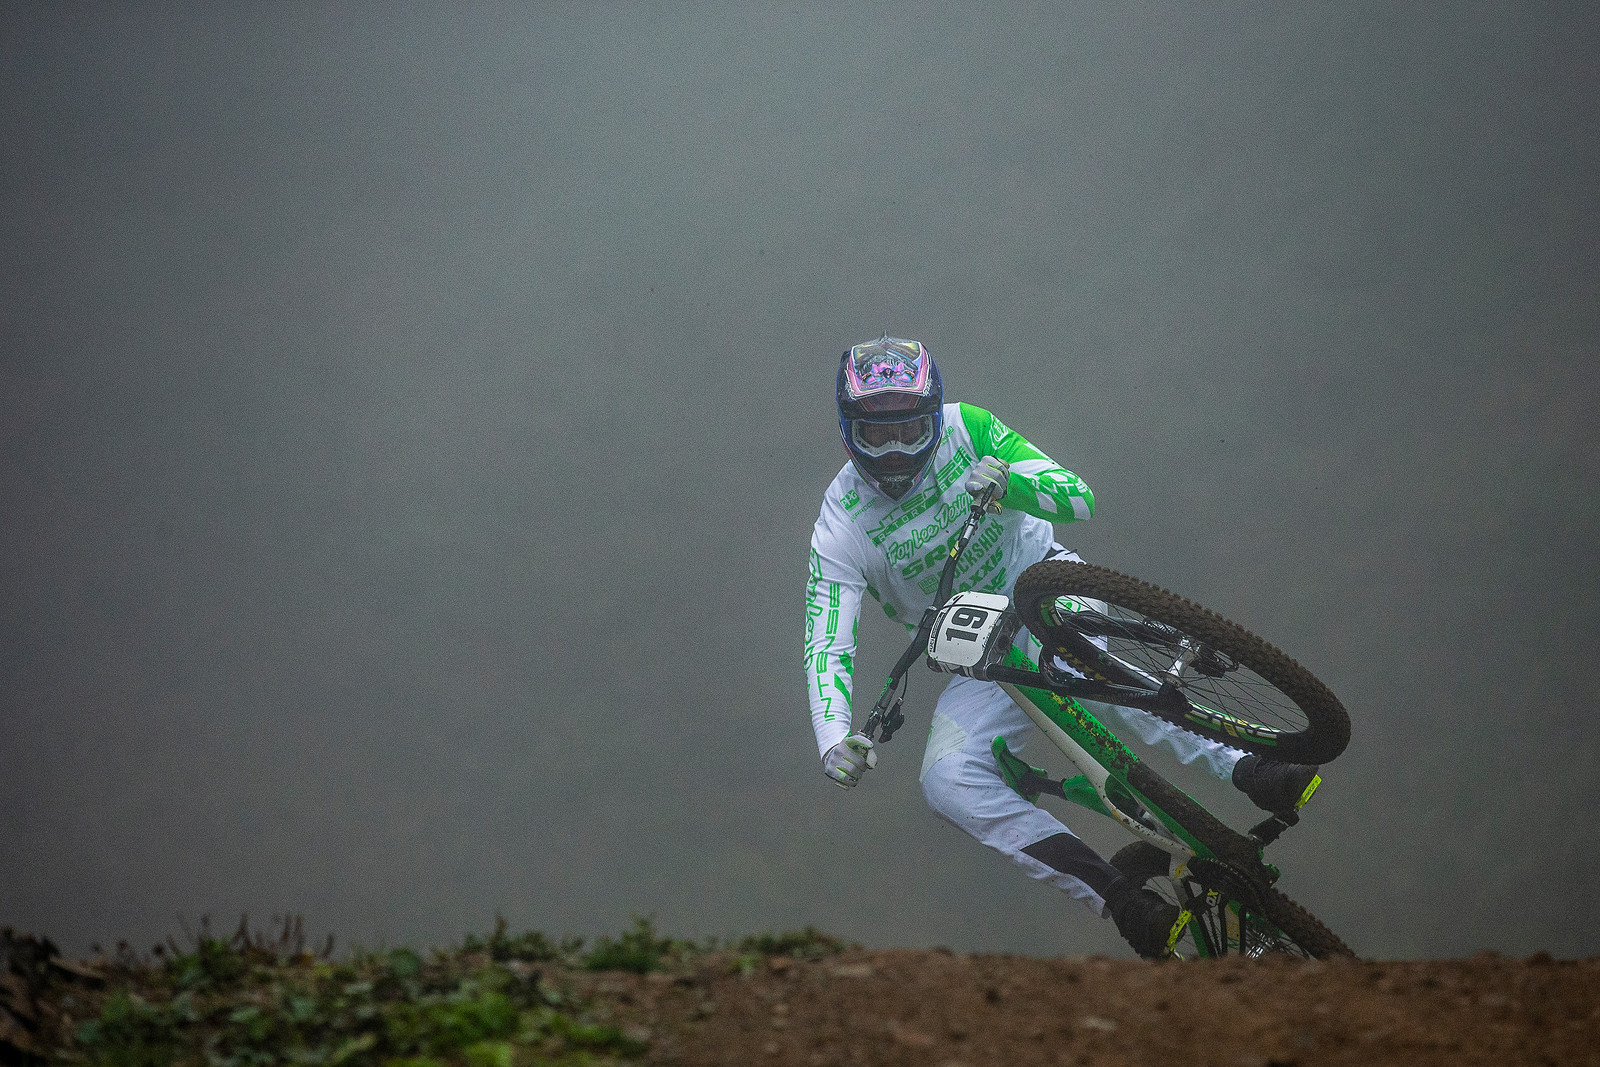 Dean Lucas - WORLD CHAMPS WHIPFEST - Mountain Biking Pictures - Vital MTB